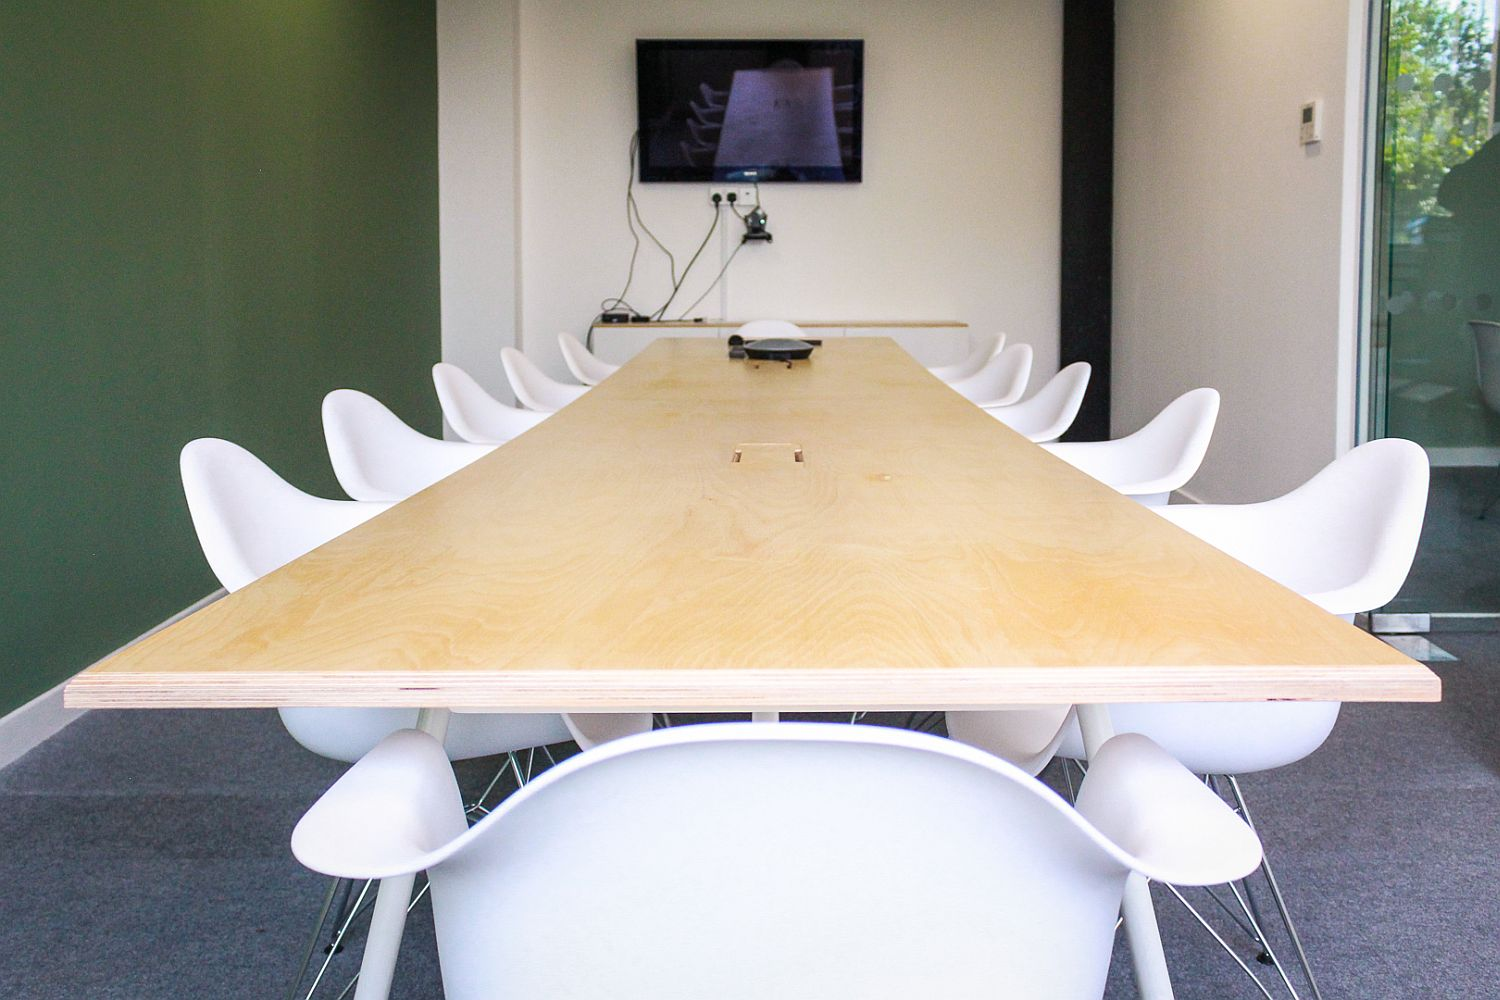 More formal conference rooms inside the Seedrs office